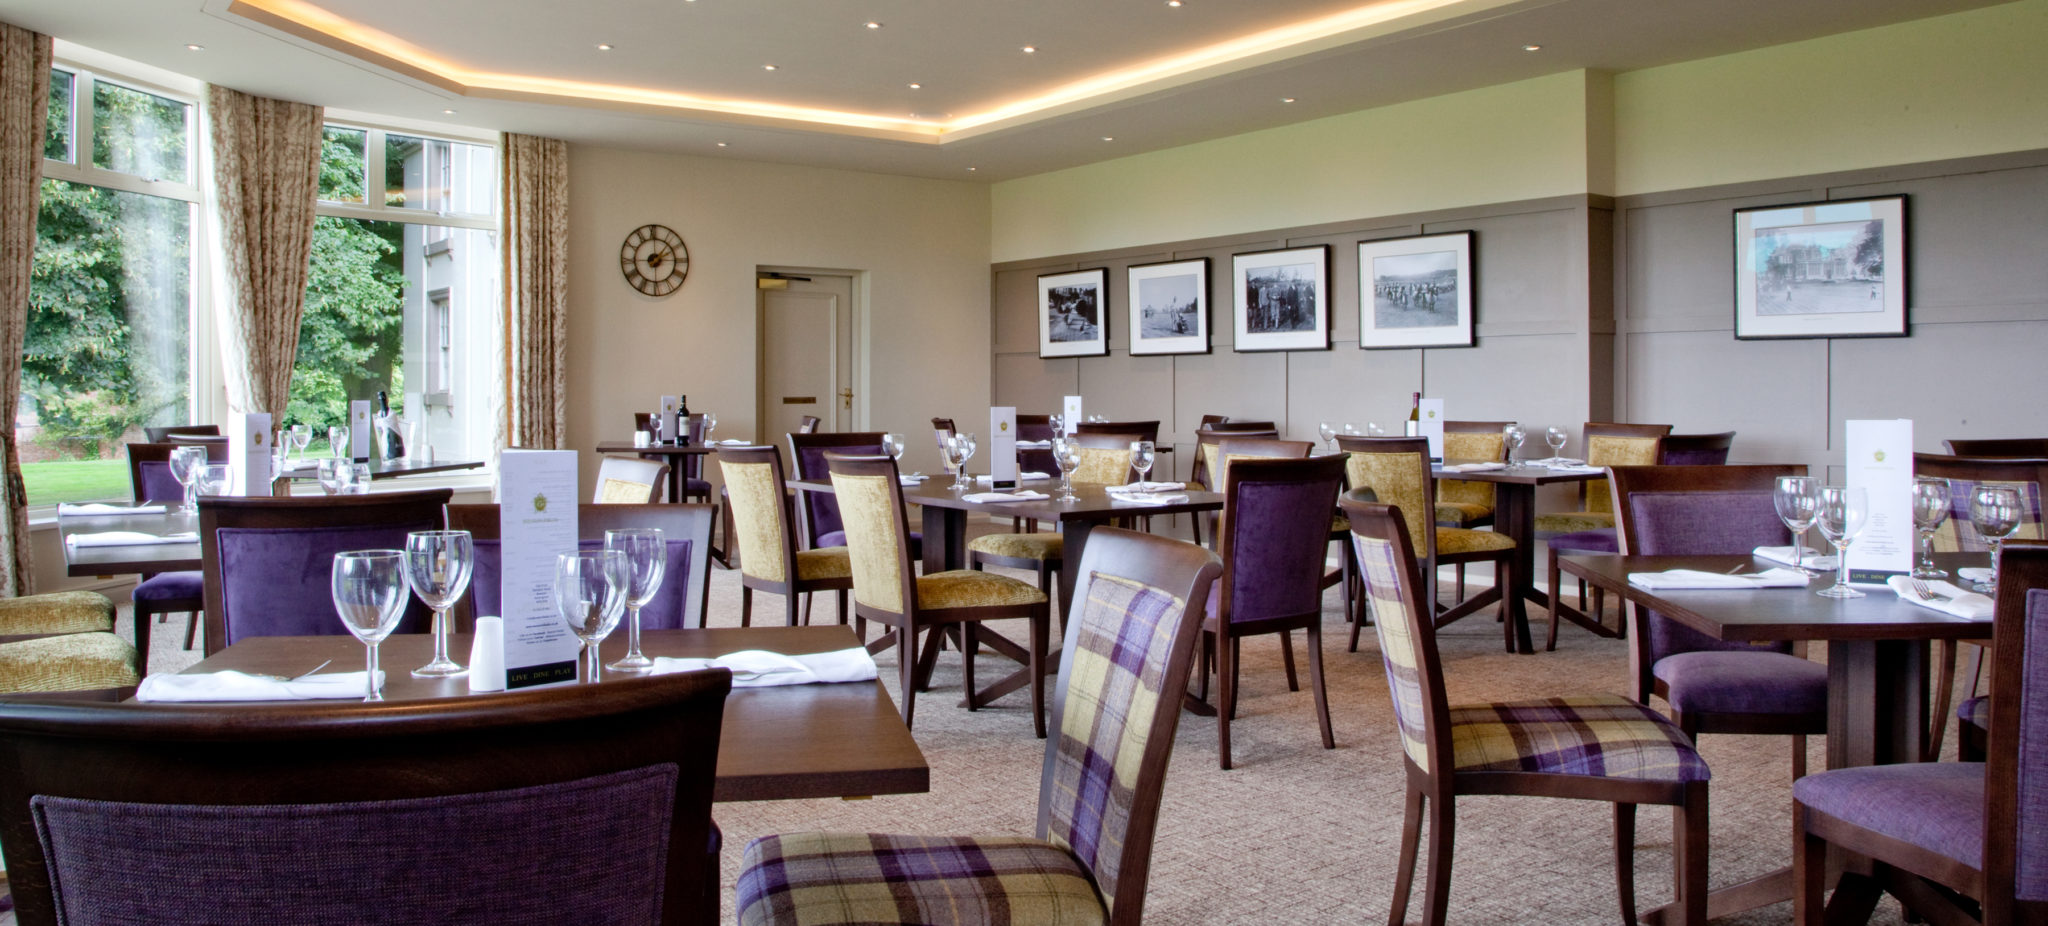 Clubhouse interior design at beeston fields golf club